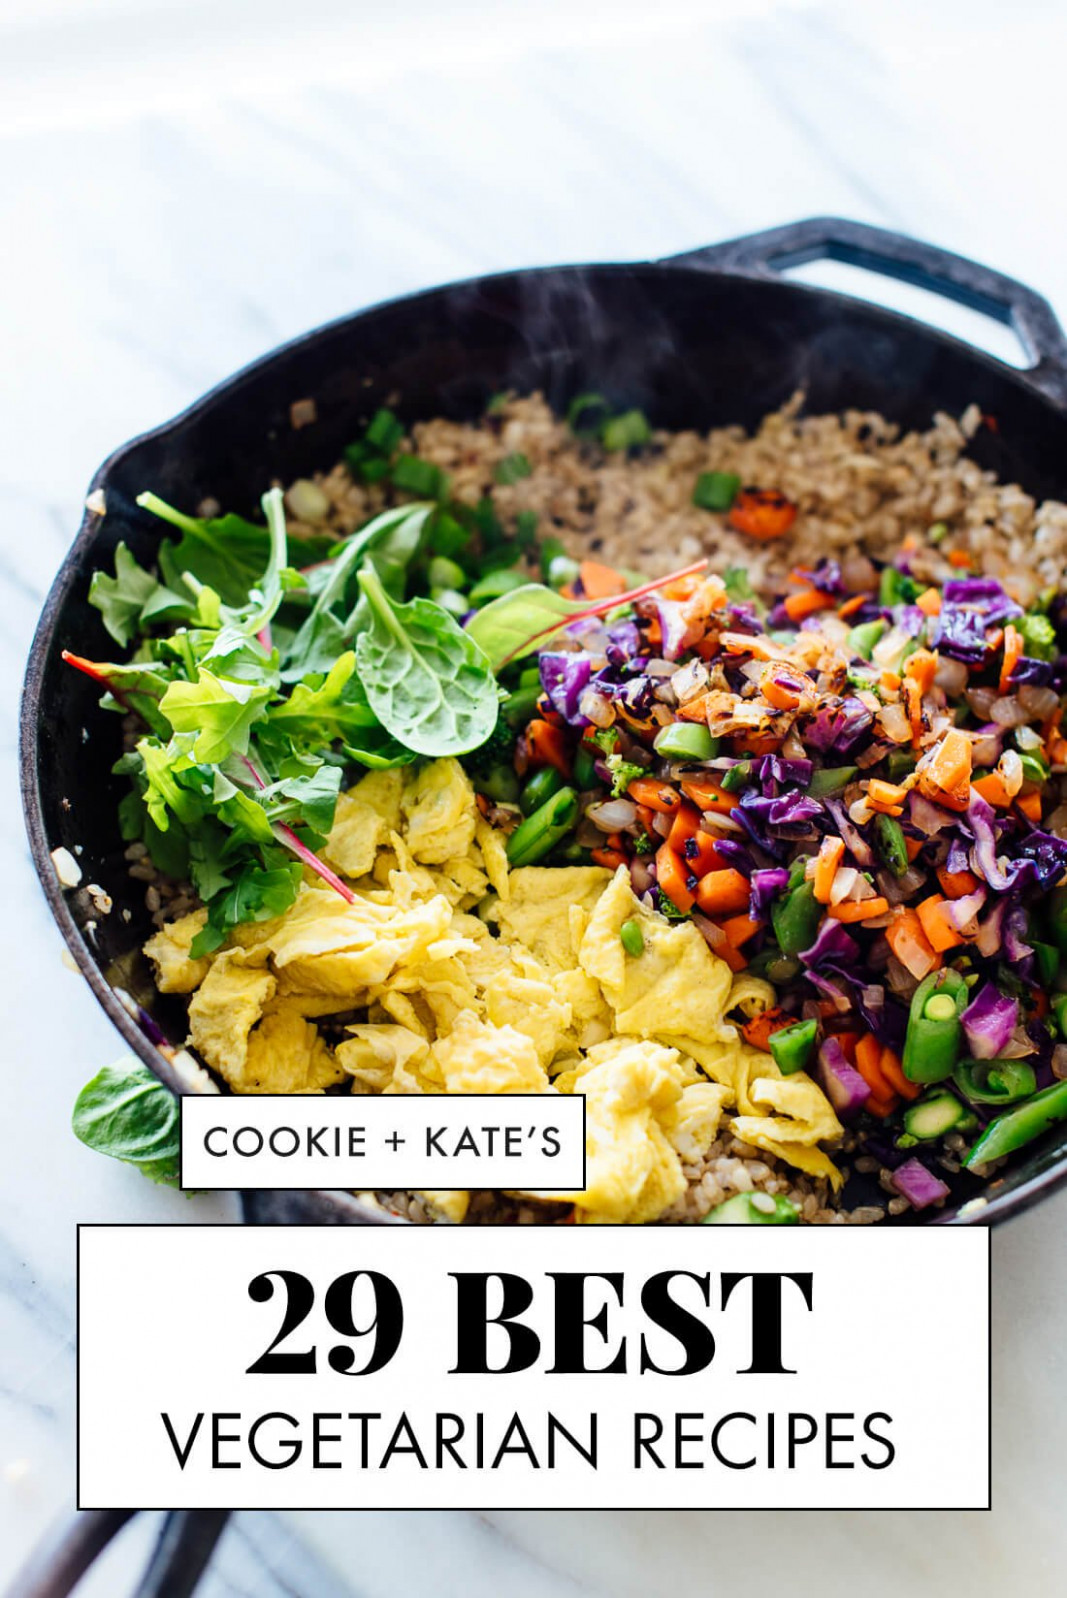 14 Best Vegetarian Recipes - Cookie and Kate - recipes that can be vegetarian or meat